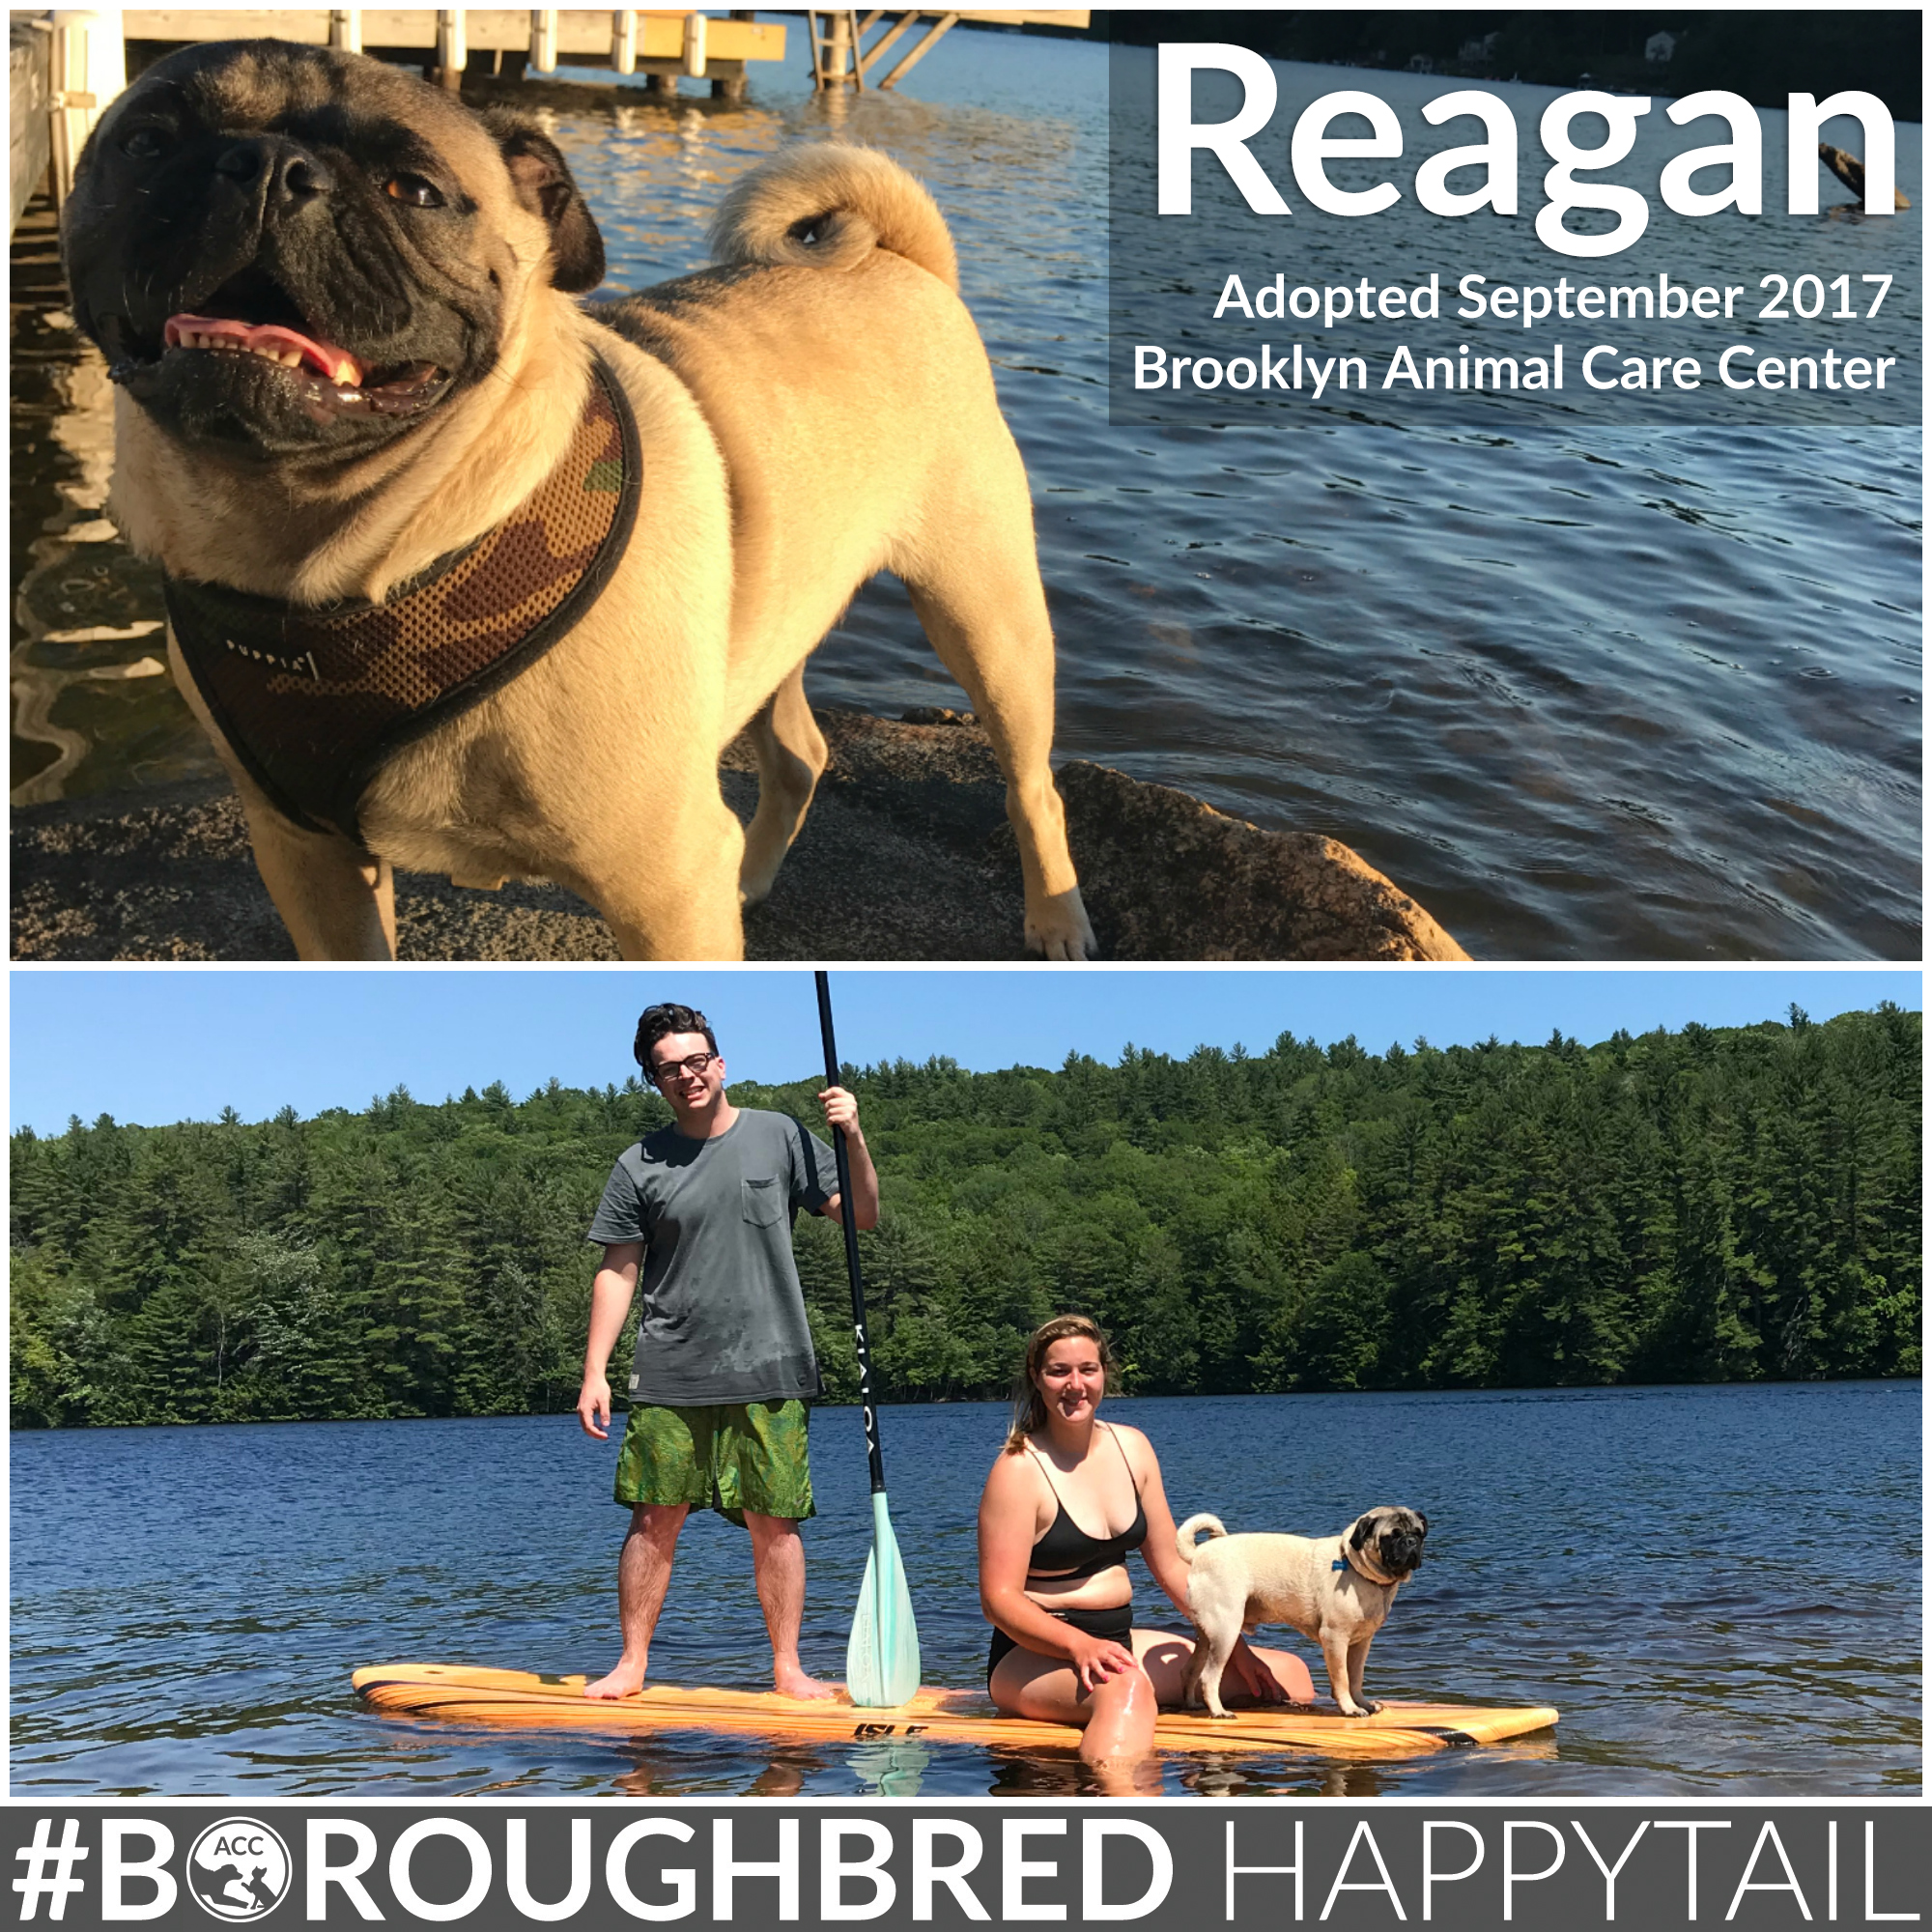 Reagan Happy Tail